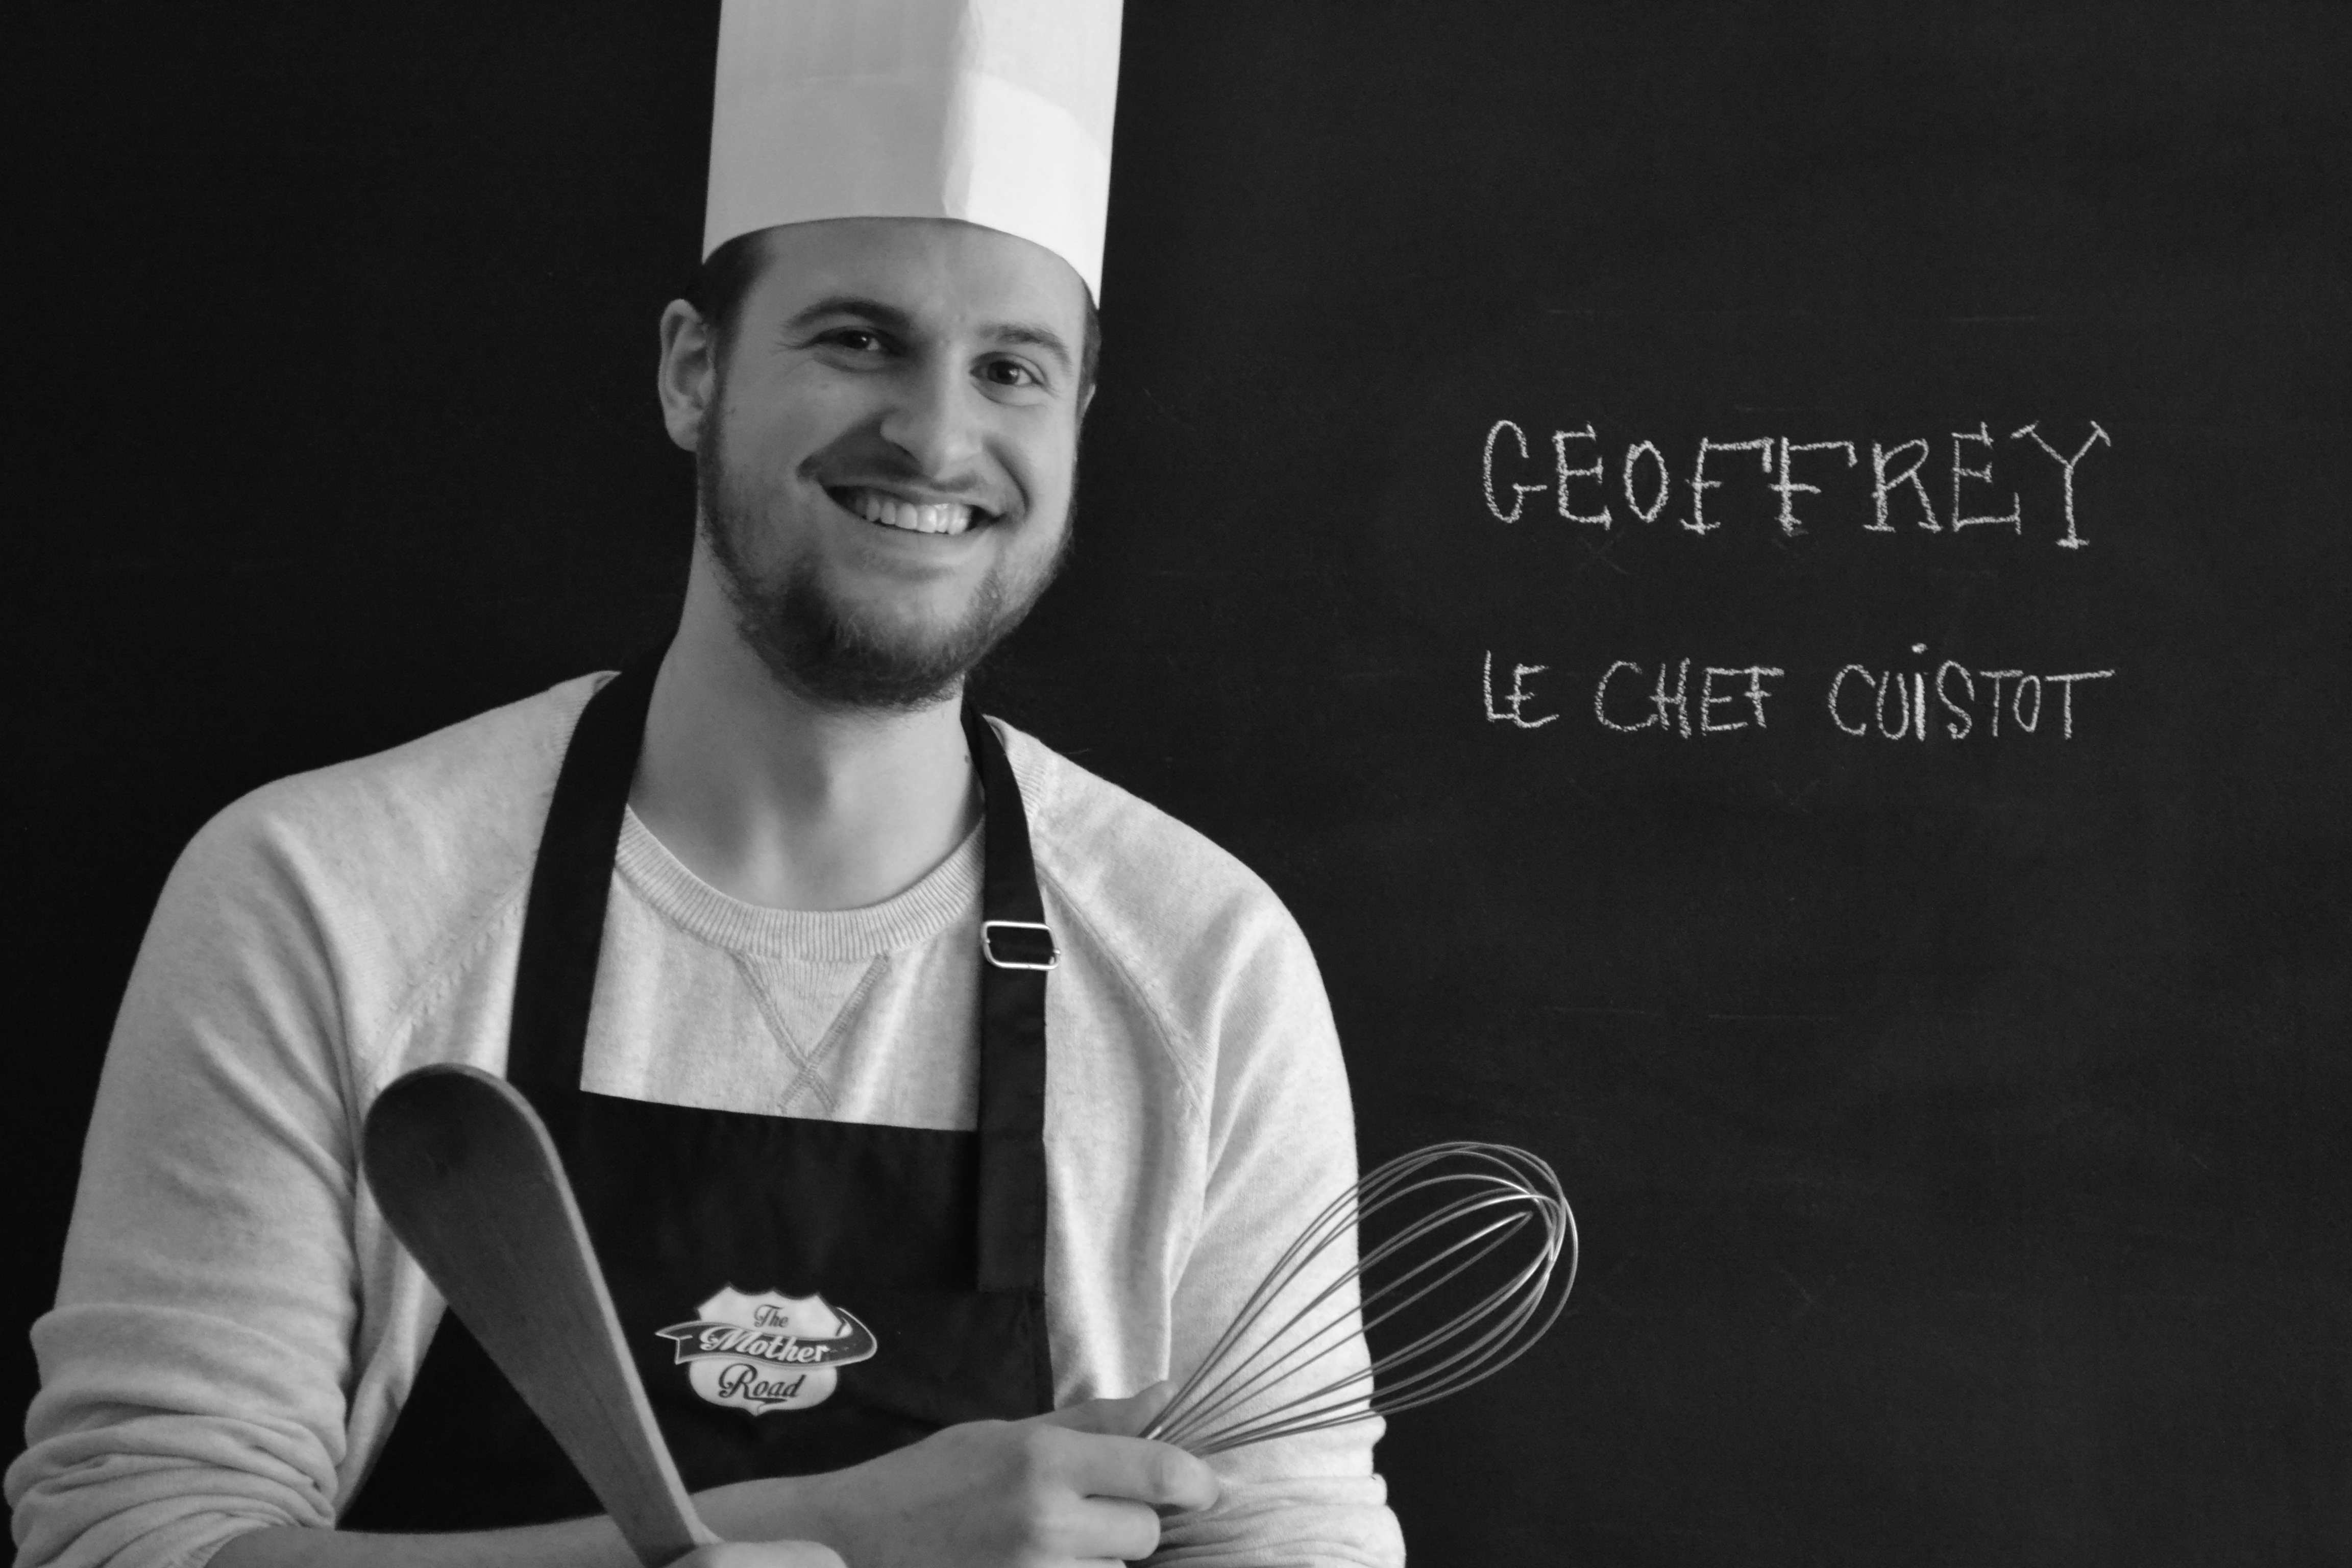 Geoffrey, le Chef Cuistot